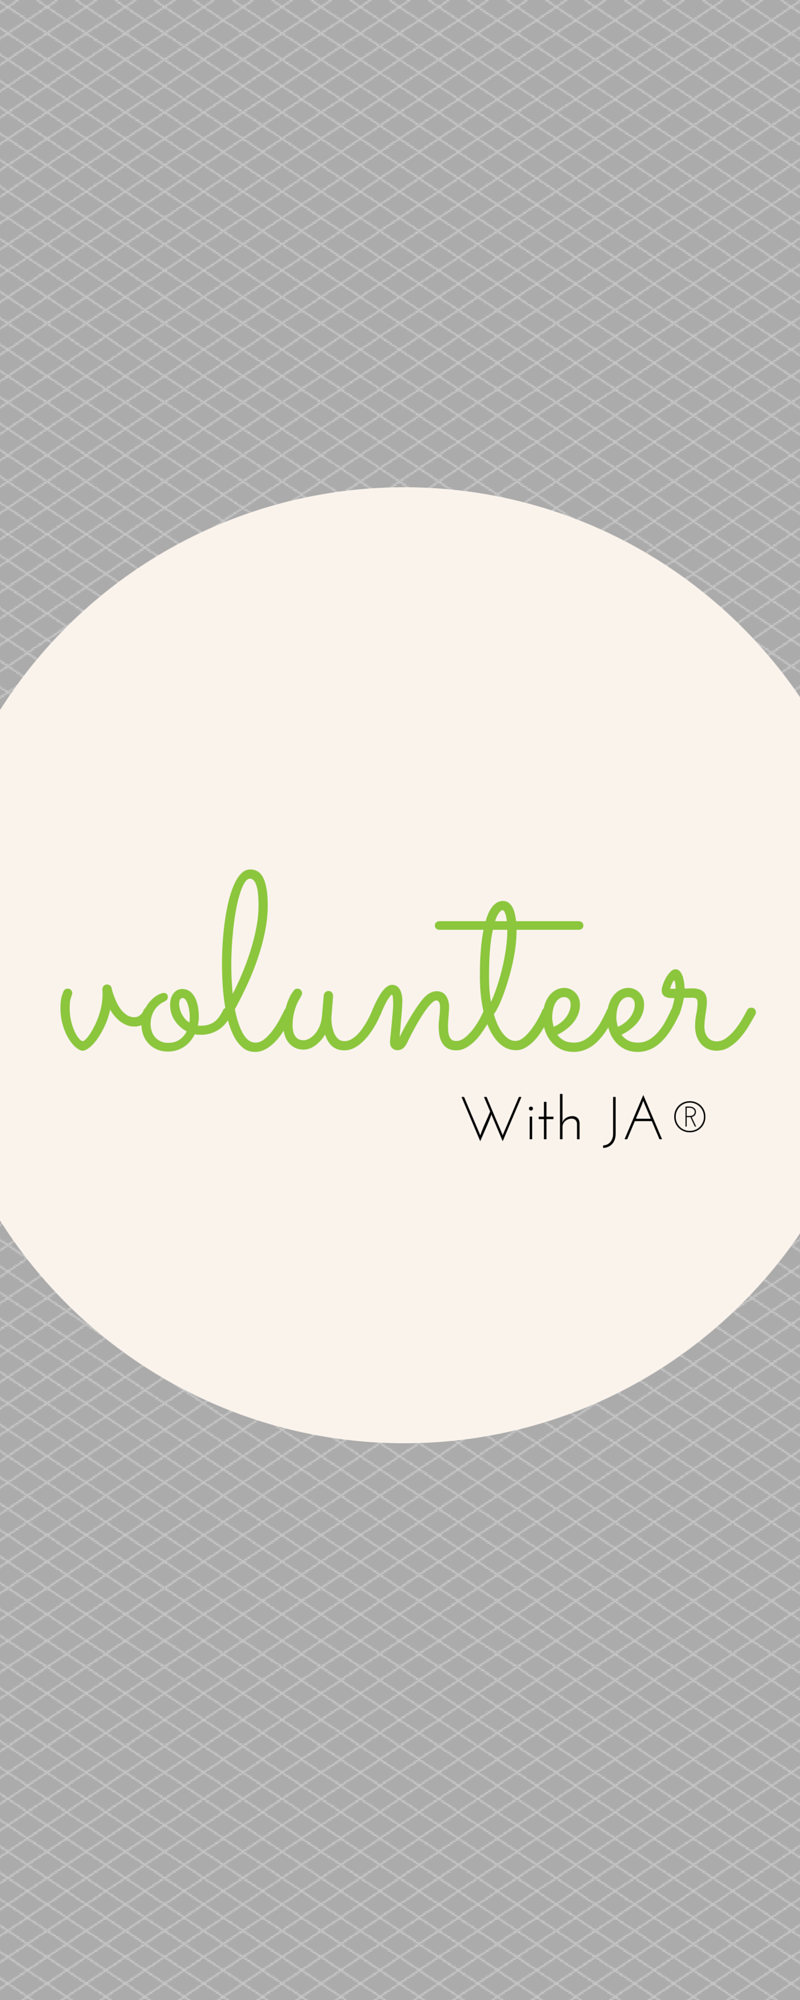 You can be their hero by being a JA® volunteer. We offer flexible training and volunteer opportunities in the classroom, at JA Finance Park®, or on-site at your company. Explore our opportunities, share your career and life experiences, and provide our region's youth with a window to the future. Together, we can inspire them to change our world.